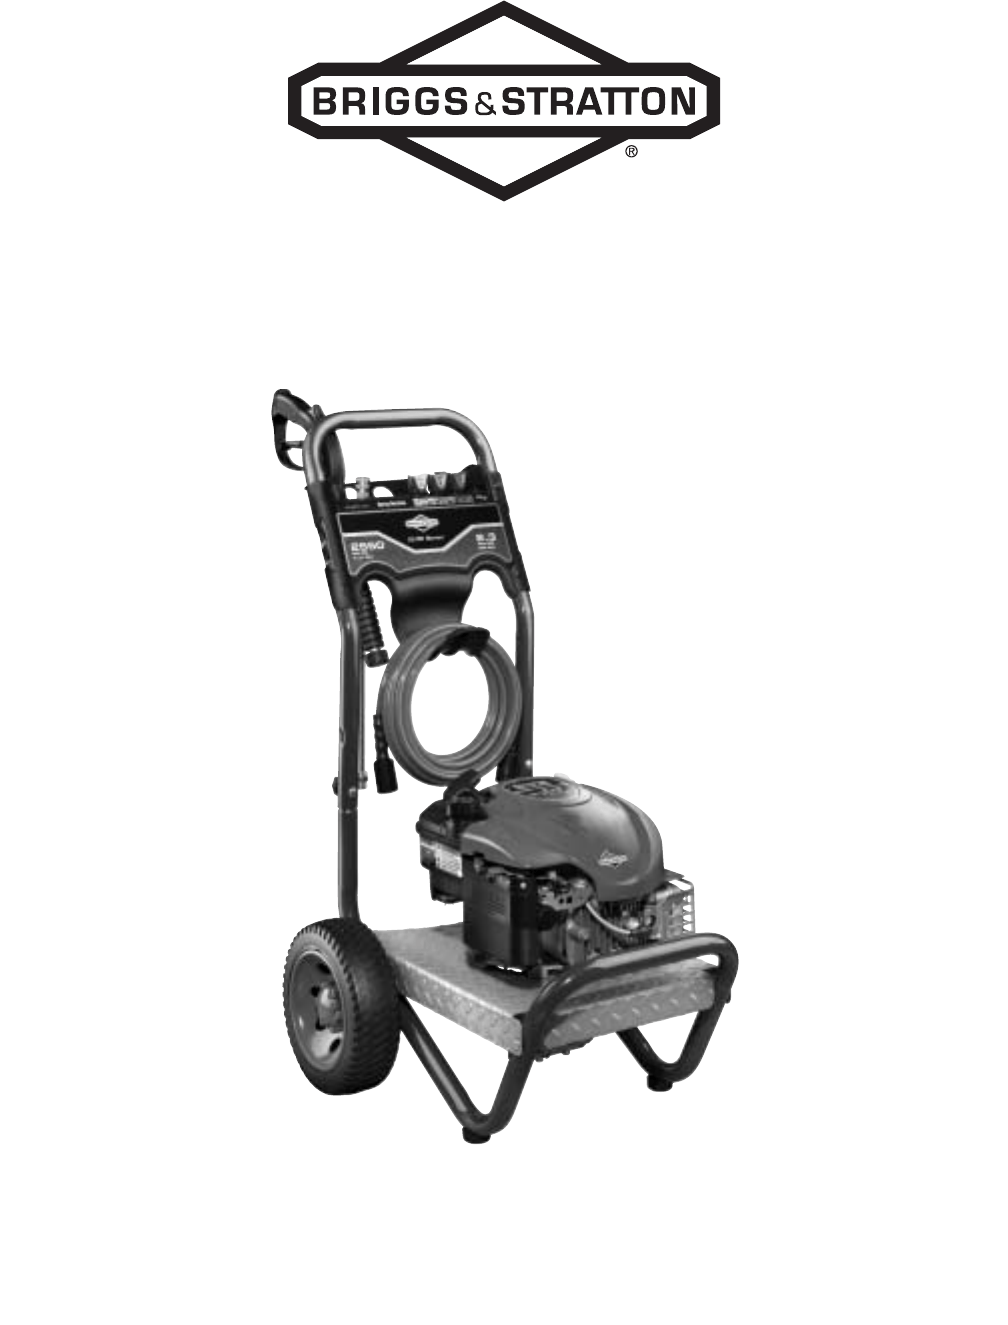 Briggs & Stratton Pressure Washer 20319 User Guide